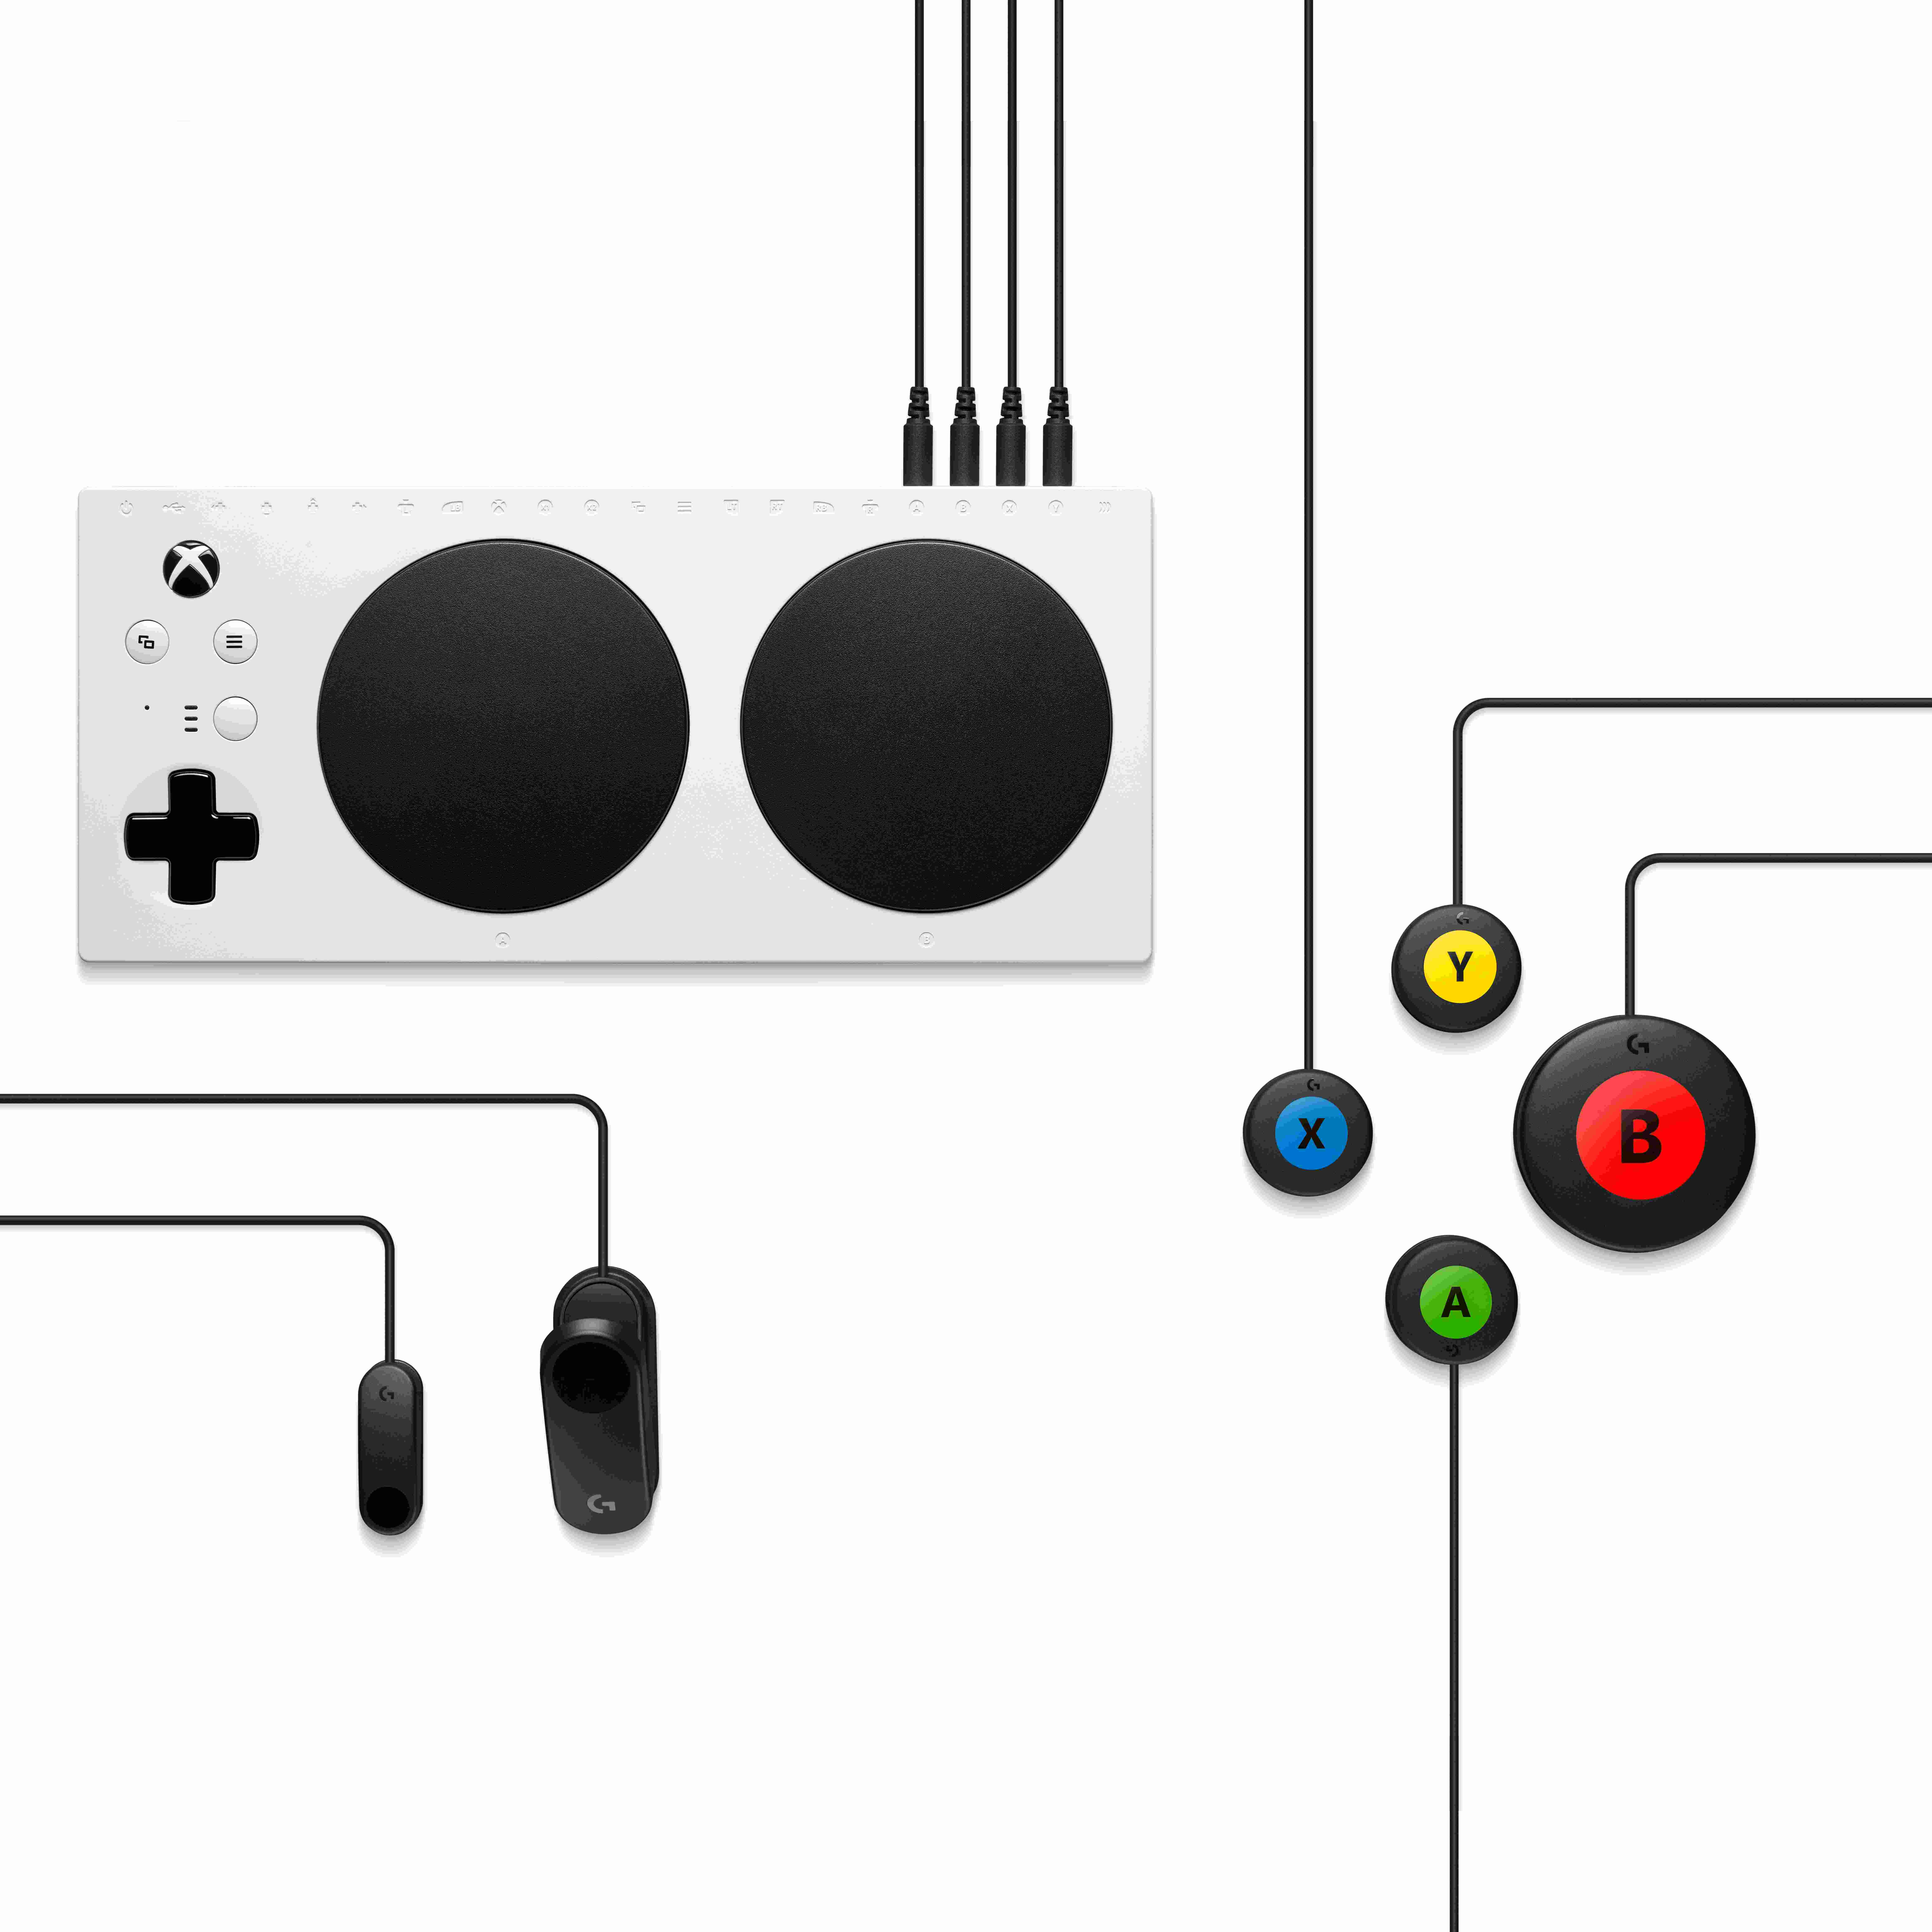 High Resolution PNG Adaptive Gaming Kit Xac Switches swiper